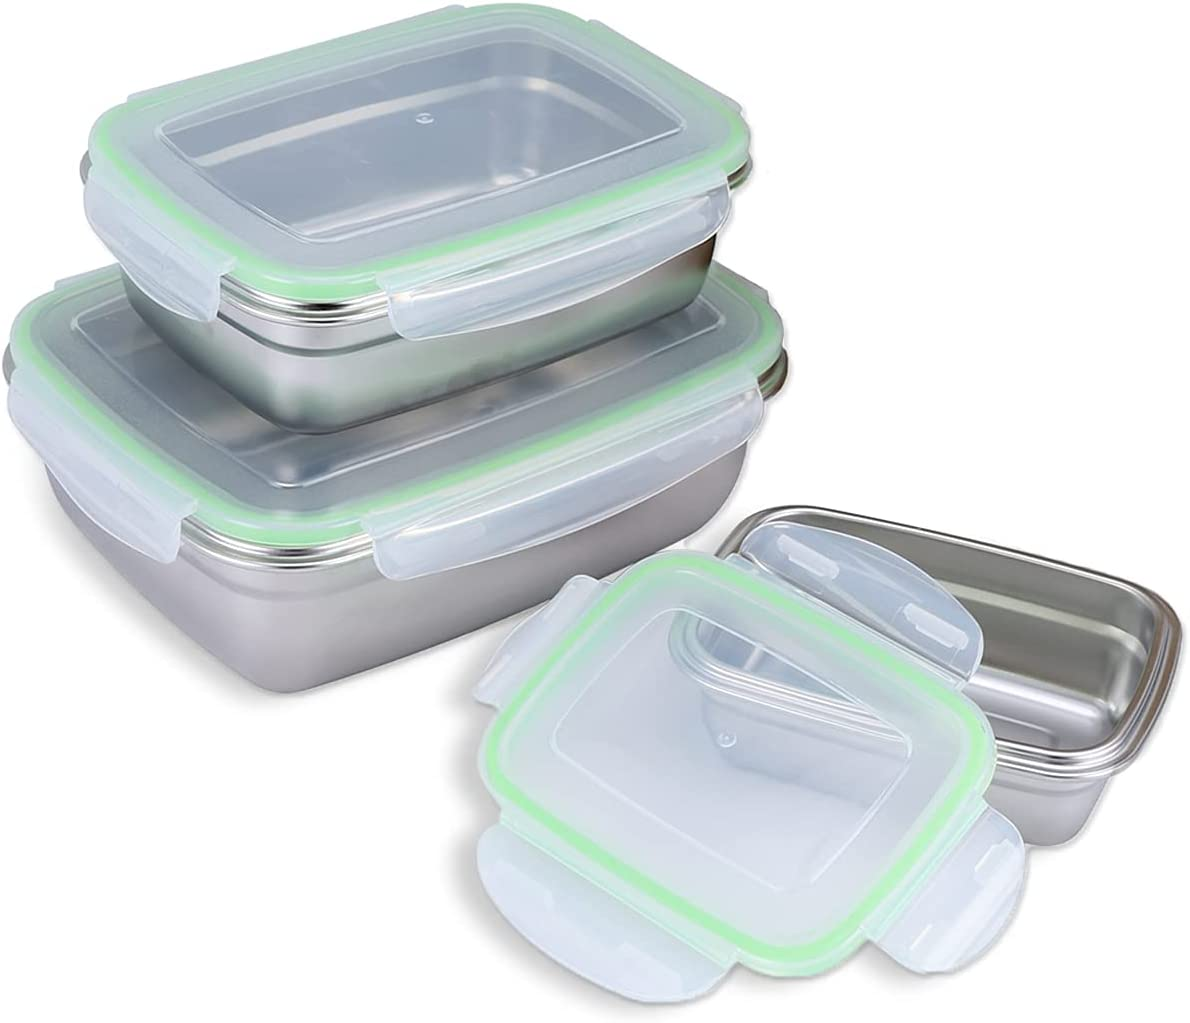 ANDMOON Food Storage Containers, Airtight & Leak Proof Lunch Stackable Bento Boxes with Lids, Stainless Steel Meal Prep Container for Kitchen, Home Use and Travel - 3PCS